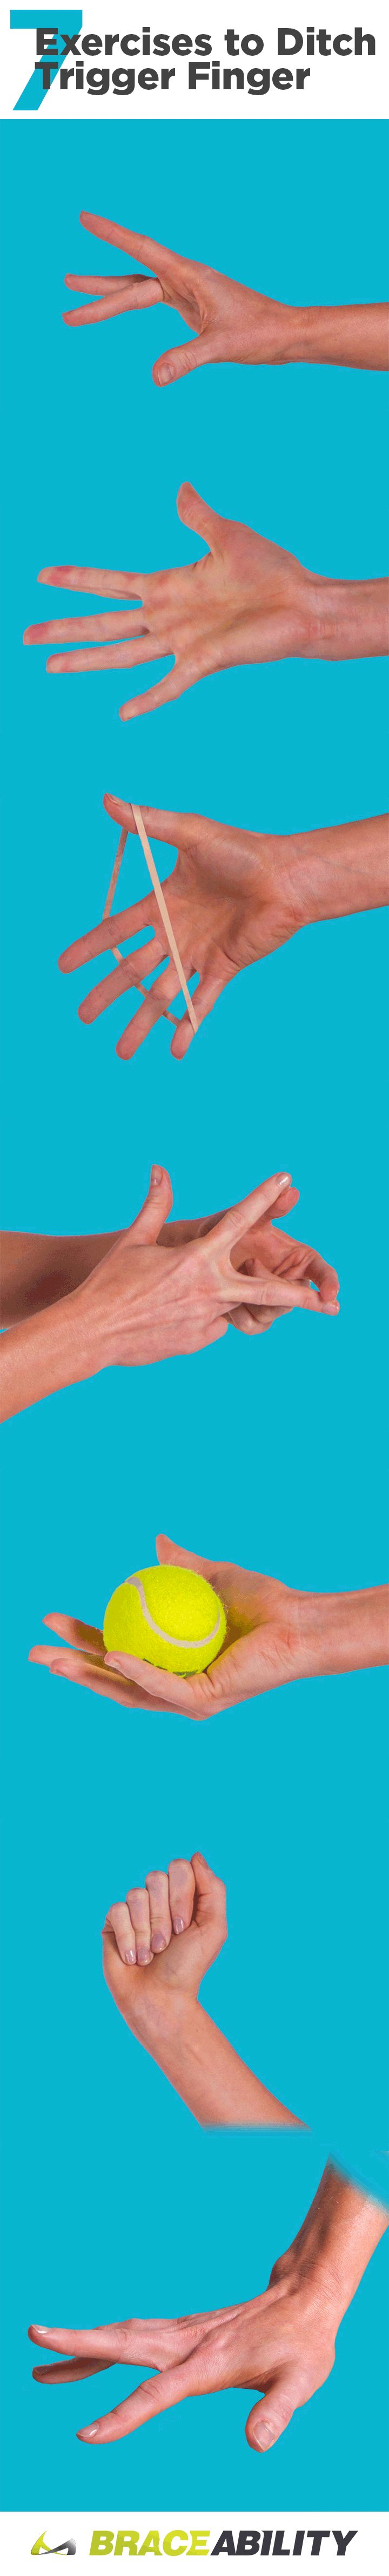 As painful as trigger finger is there is a remedy at home! Stretching will often stop the tendon from locking into the sheath. The exercises shown here should help alleviate the inflammation and pain associated with trigger finger and thumb.